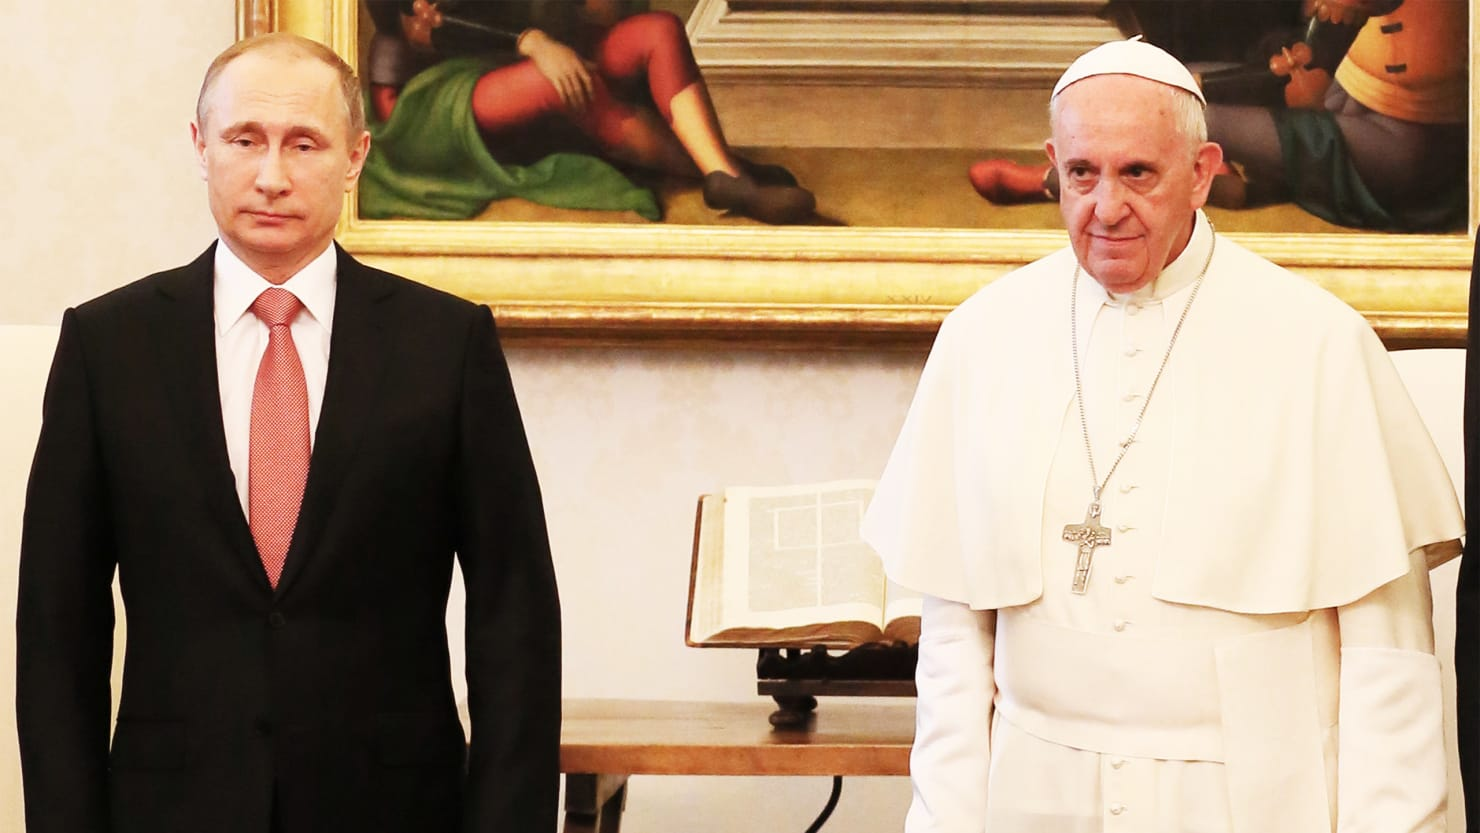 Putin's People Claimed Pope Francis Was With Them Supporting Assad. Nope.